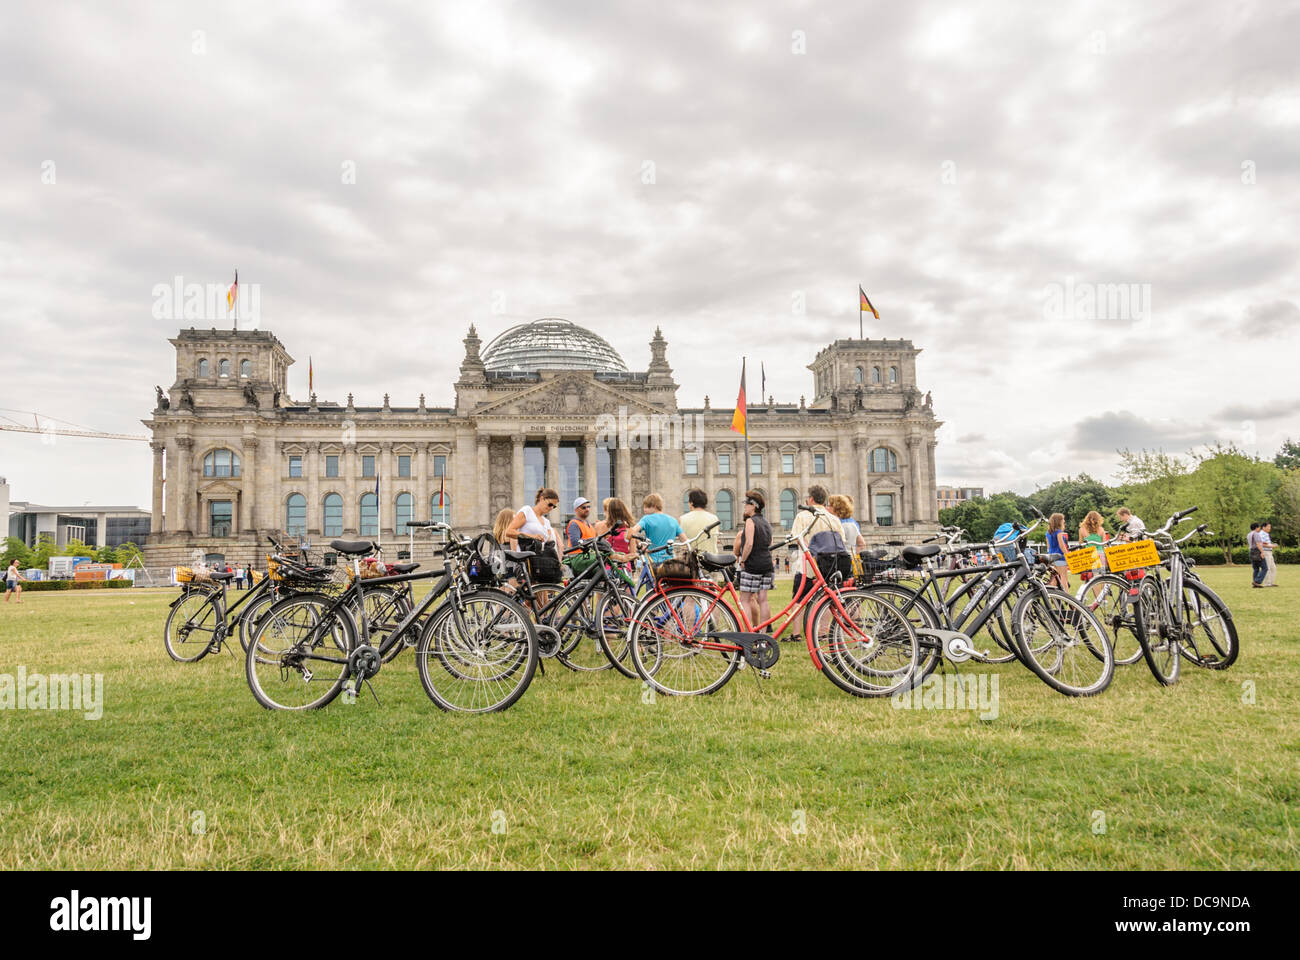 Berlin on Bike - Sightseeing tourists group with bicycles in front of the Reichstag building - Berlin Germany Stock Photo